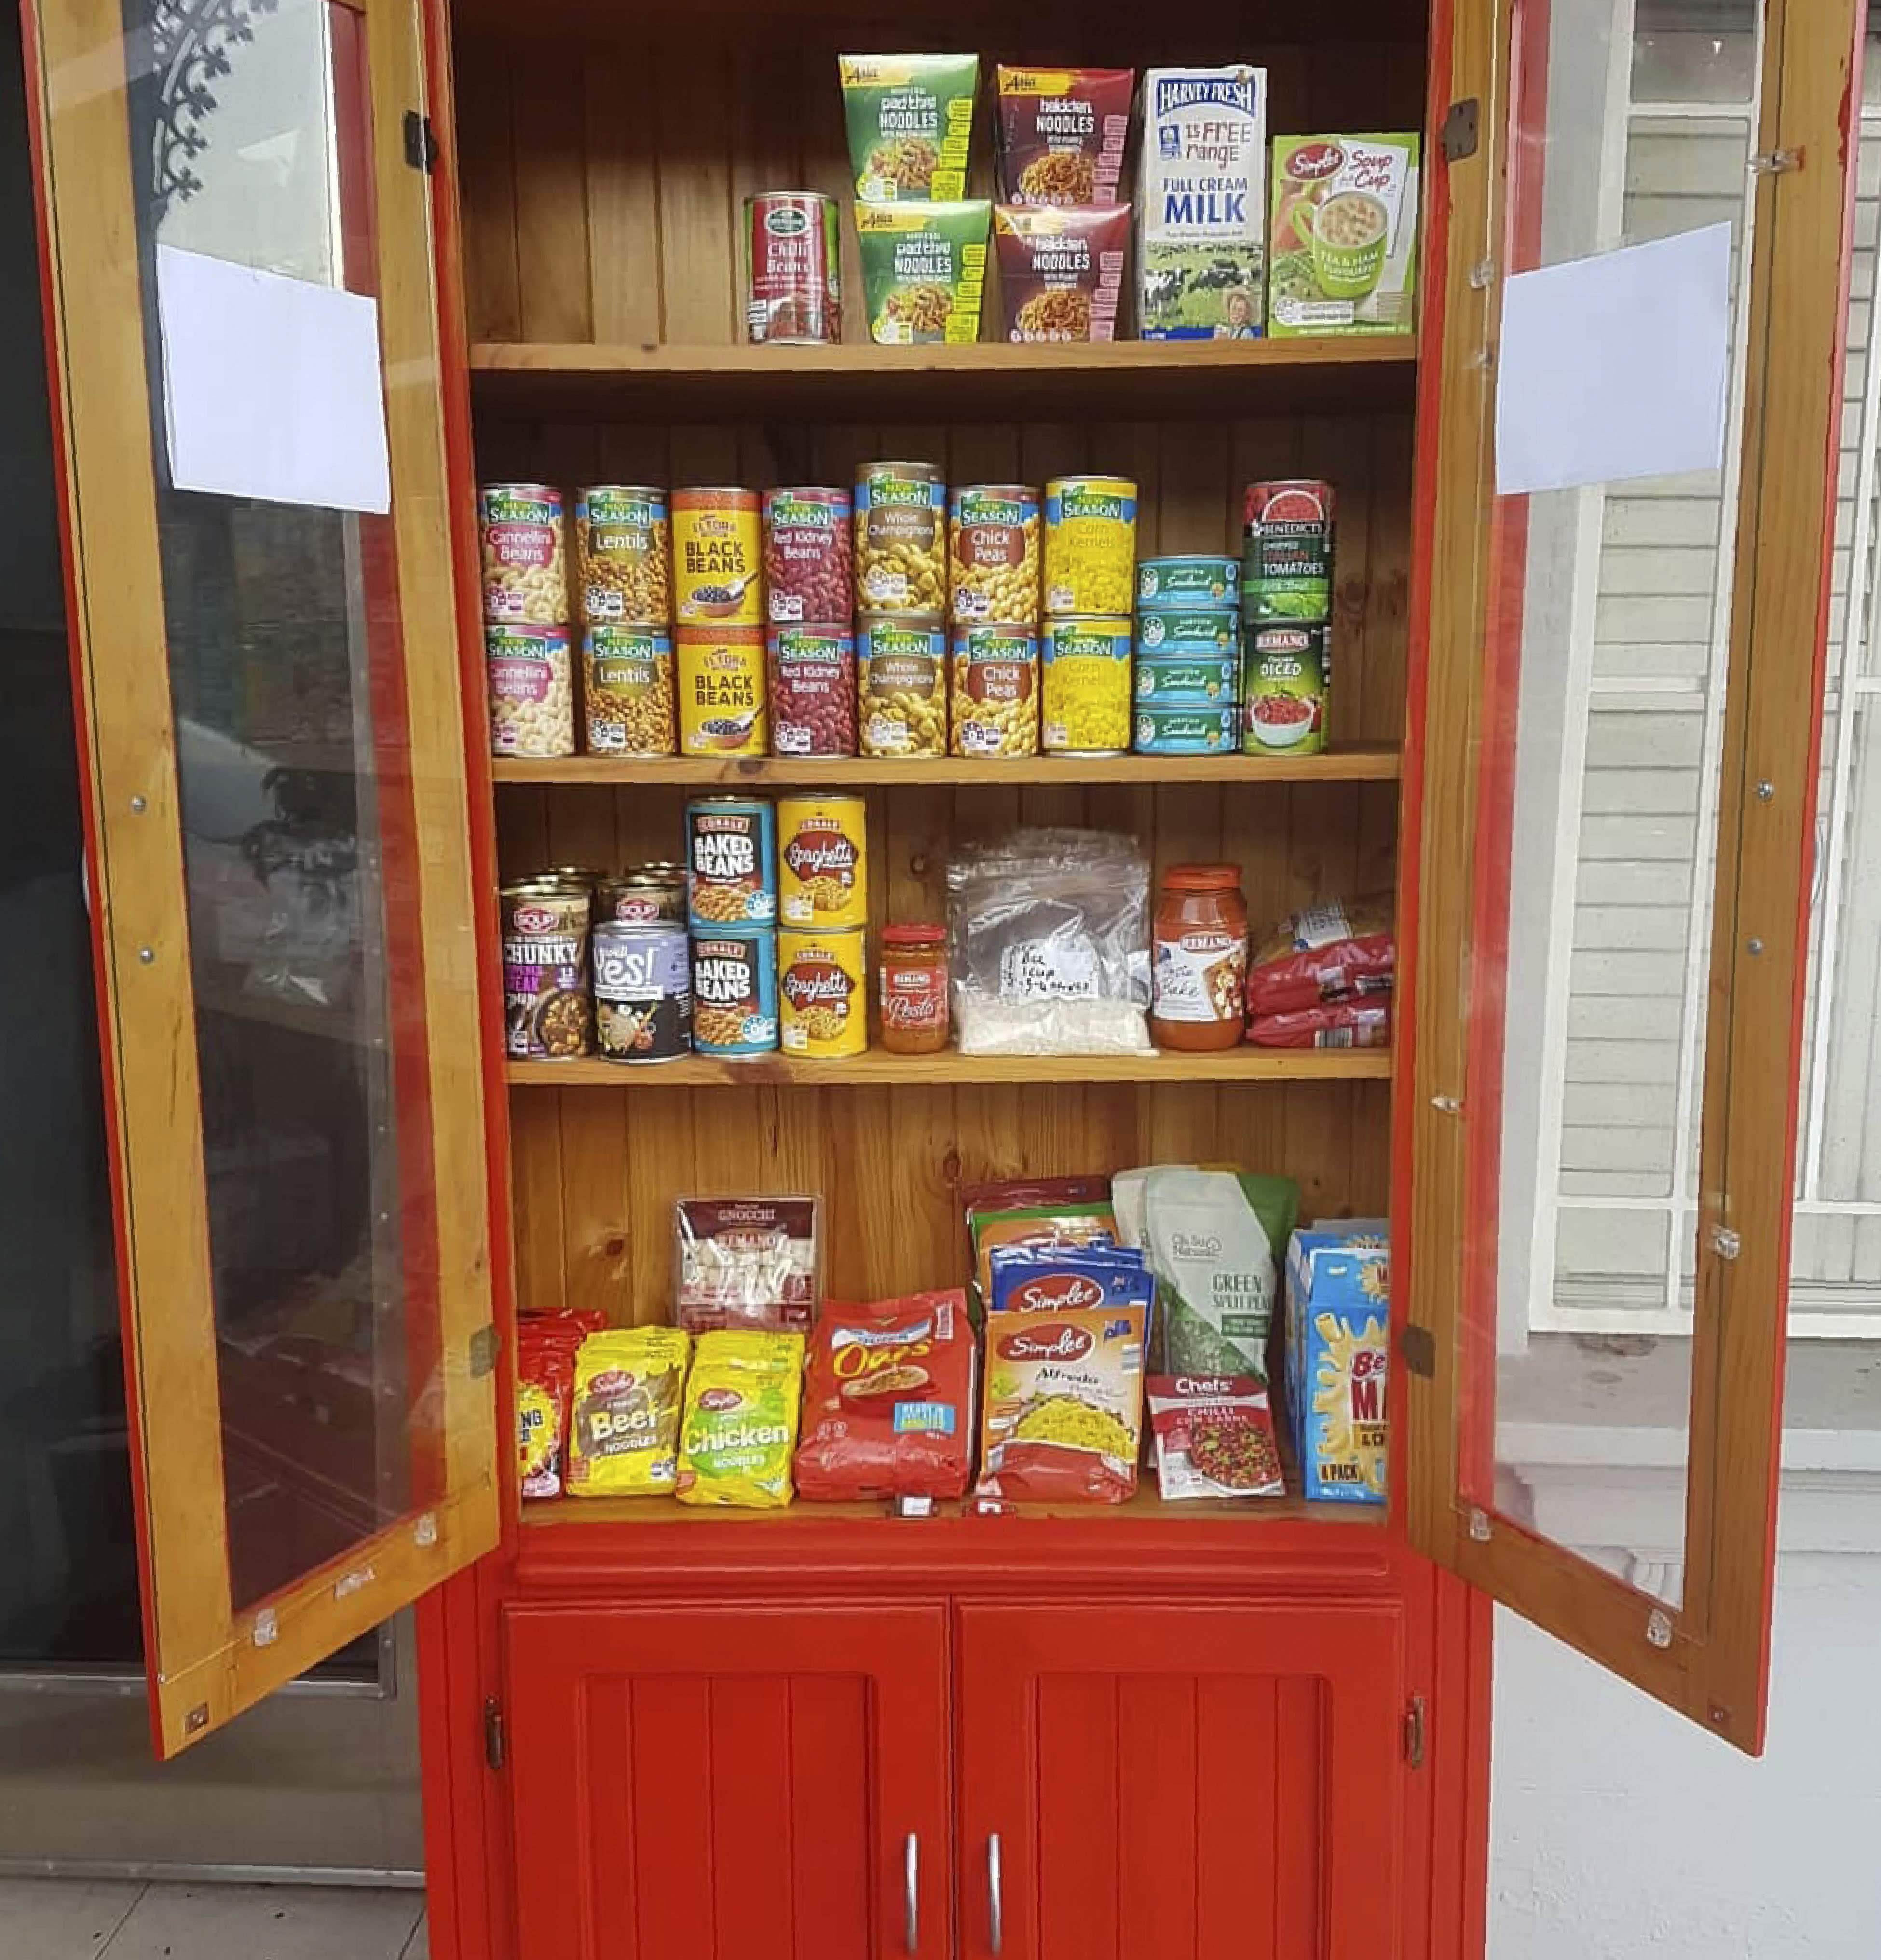 In this July 19, 2020 photo provided by Rick Everett, a free food pantry sits outside his home in Sydney, Australia, where he offers coffee, home-cooked meals and conversation to friends and neighbors during the coronavirus pandemic. (Rick Everett via AP)